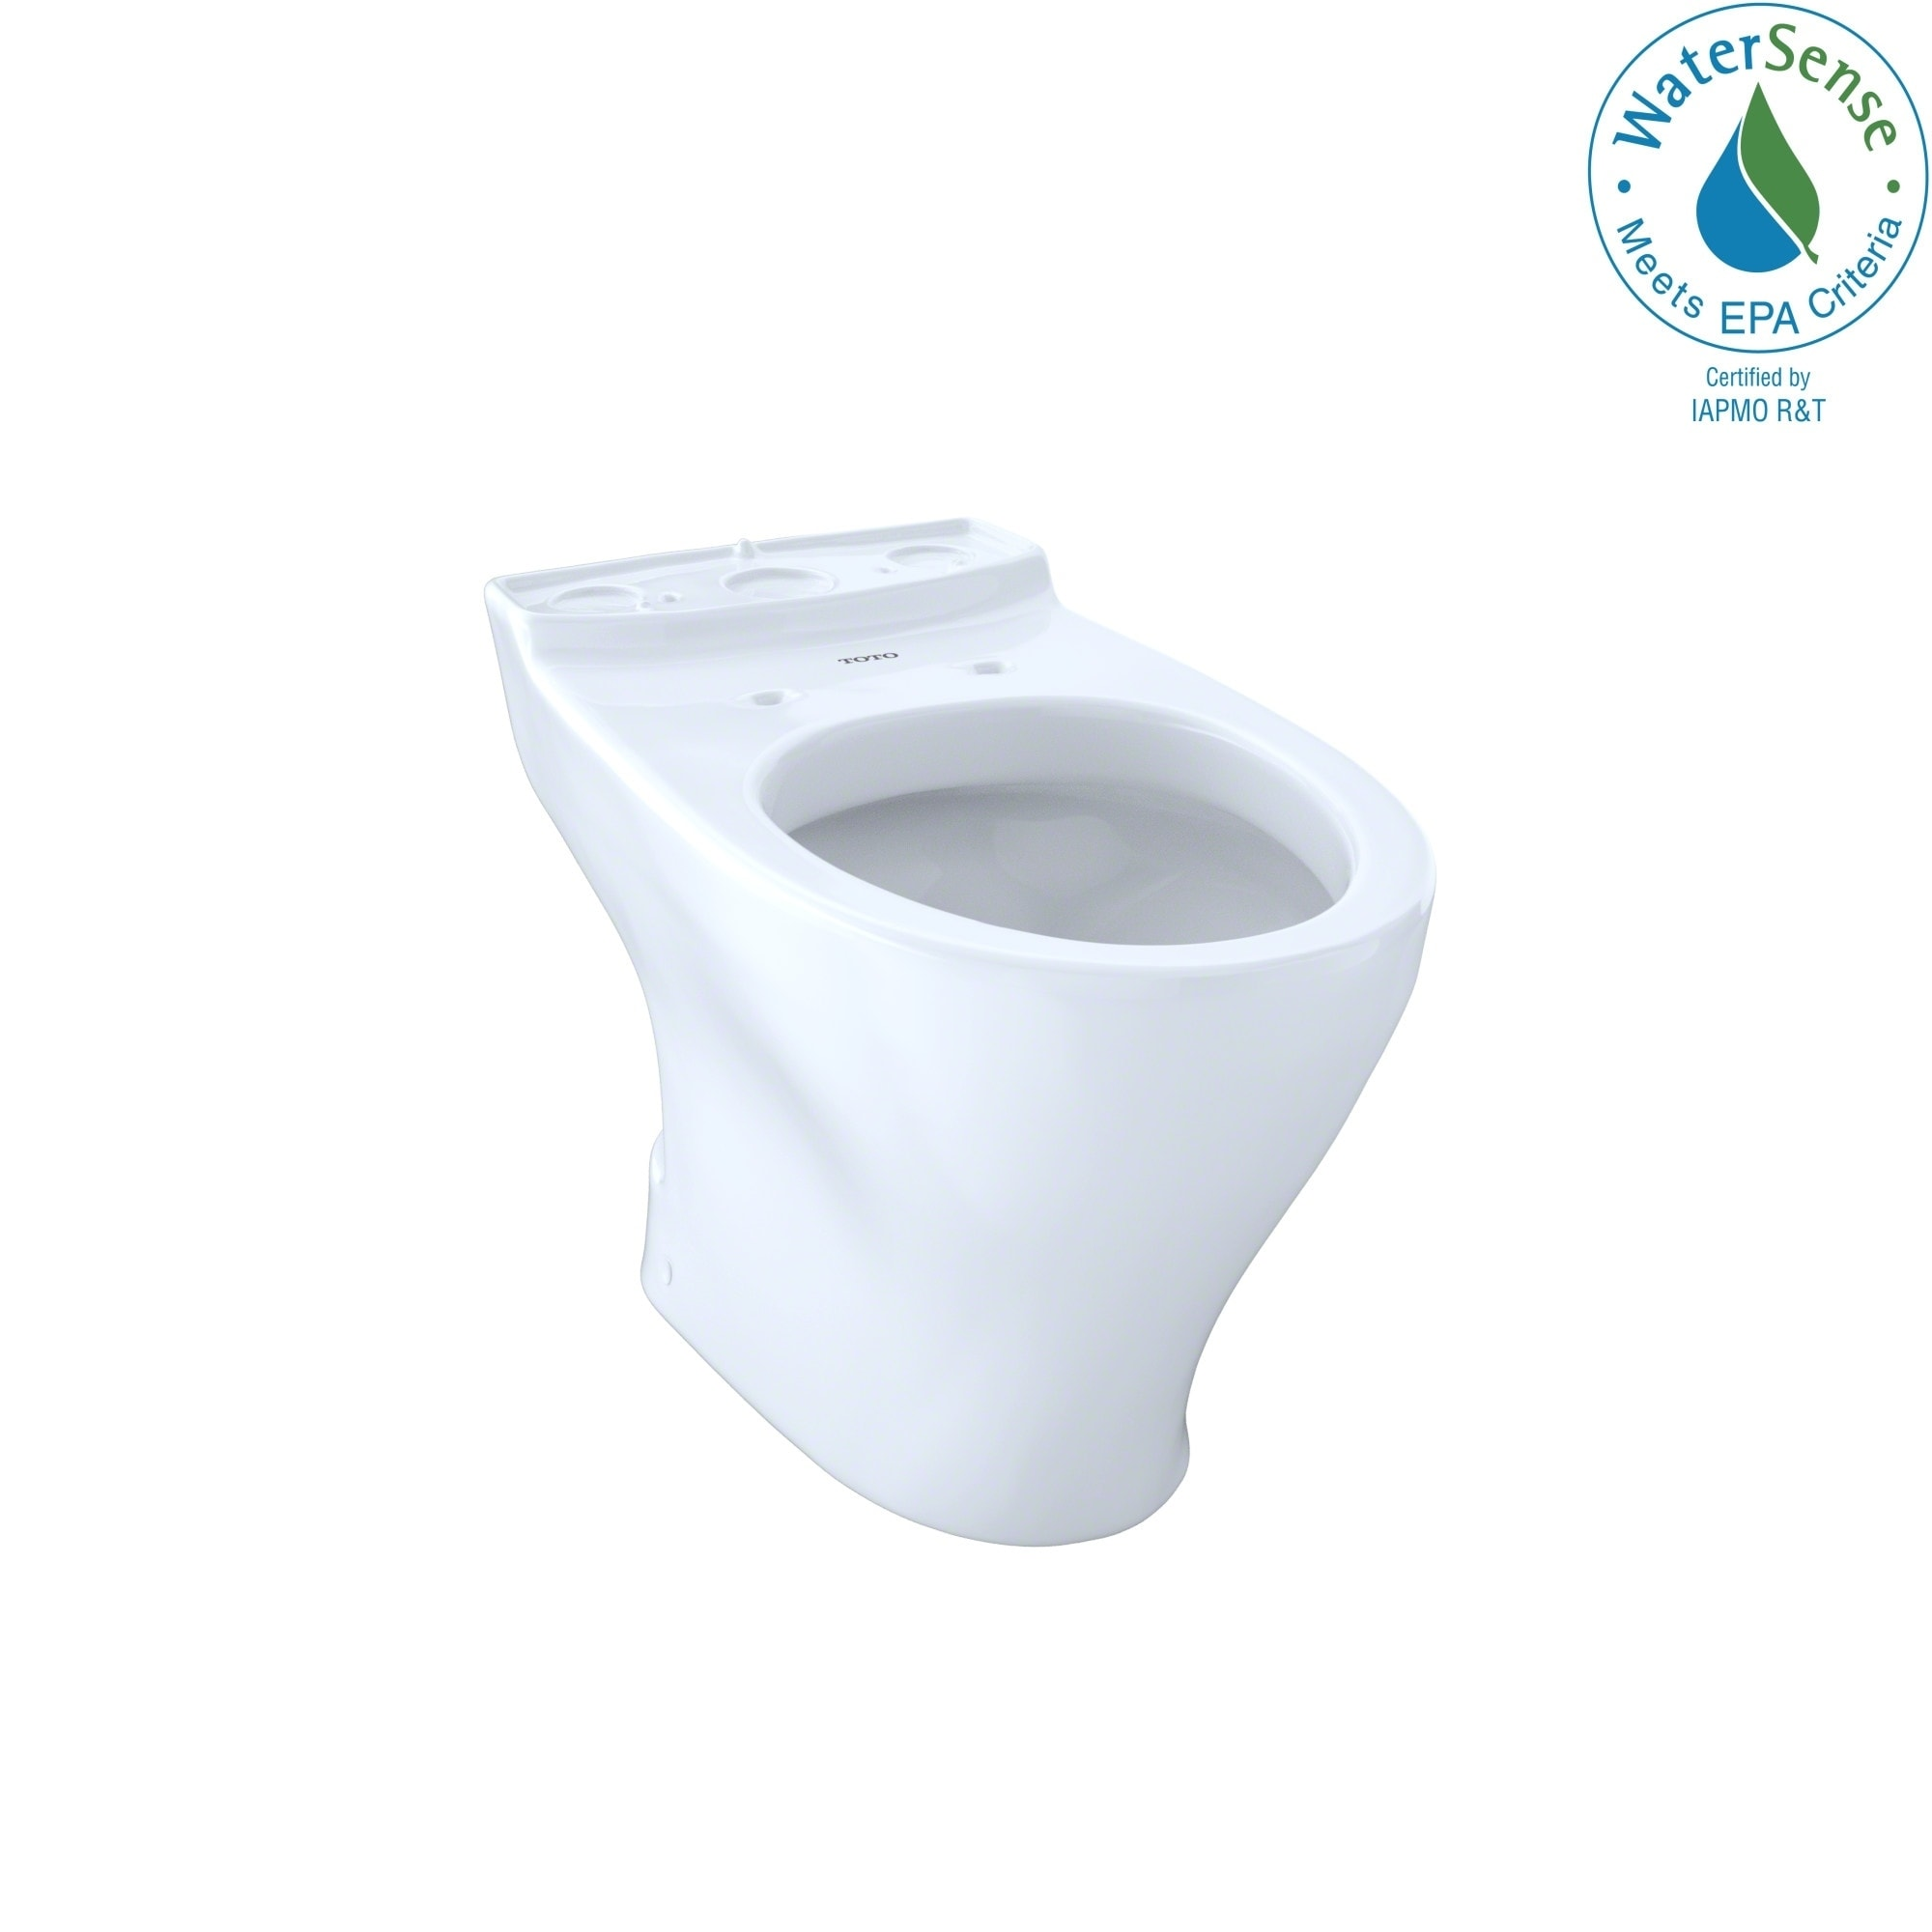 Toto Aquia Dual Flush Elongated Toilet Bowl with 10-inch ...